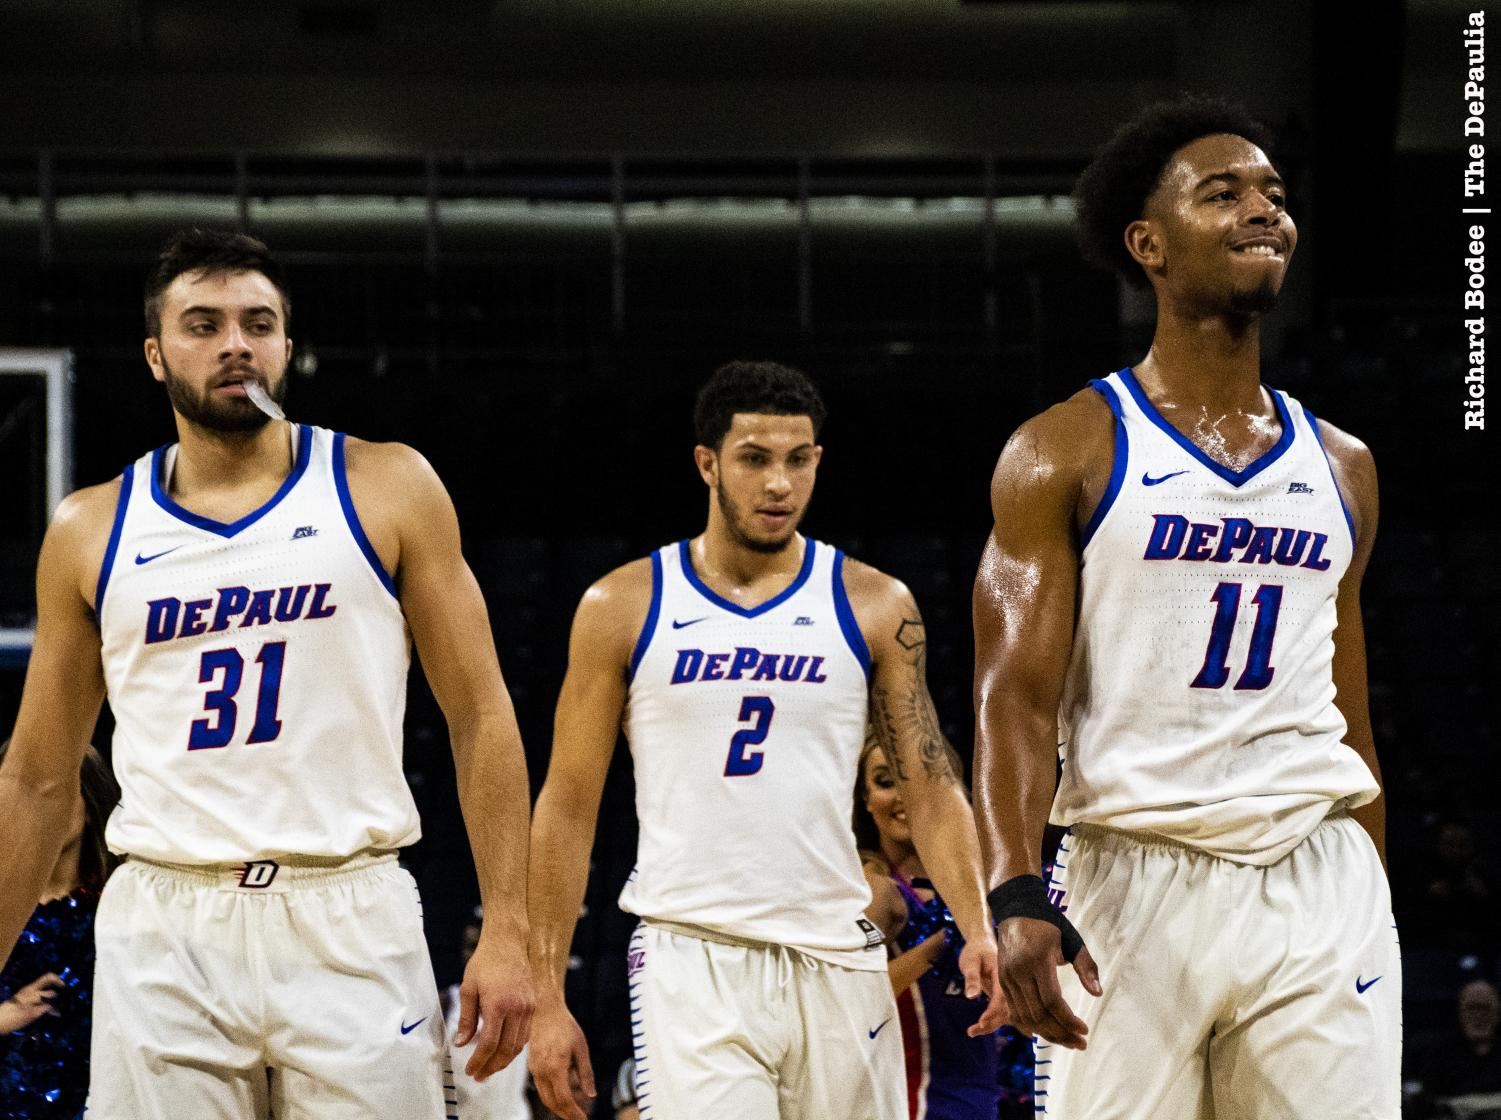 DePaul plays Central Michigan in the first round of the CBI on Wednesday evening. Richard Bodee I The DePaulia